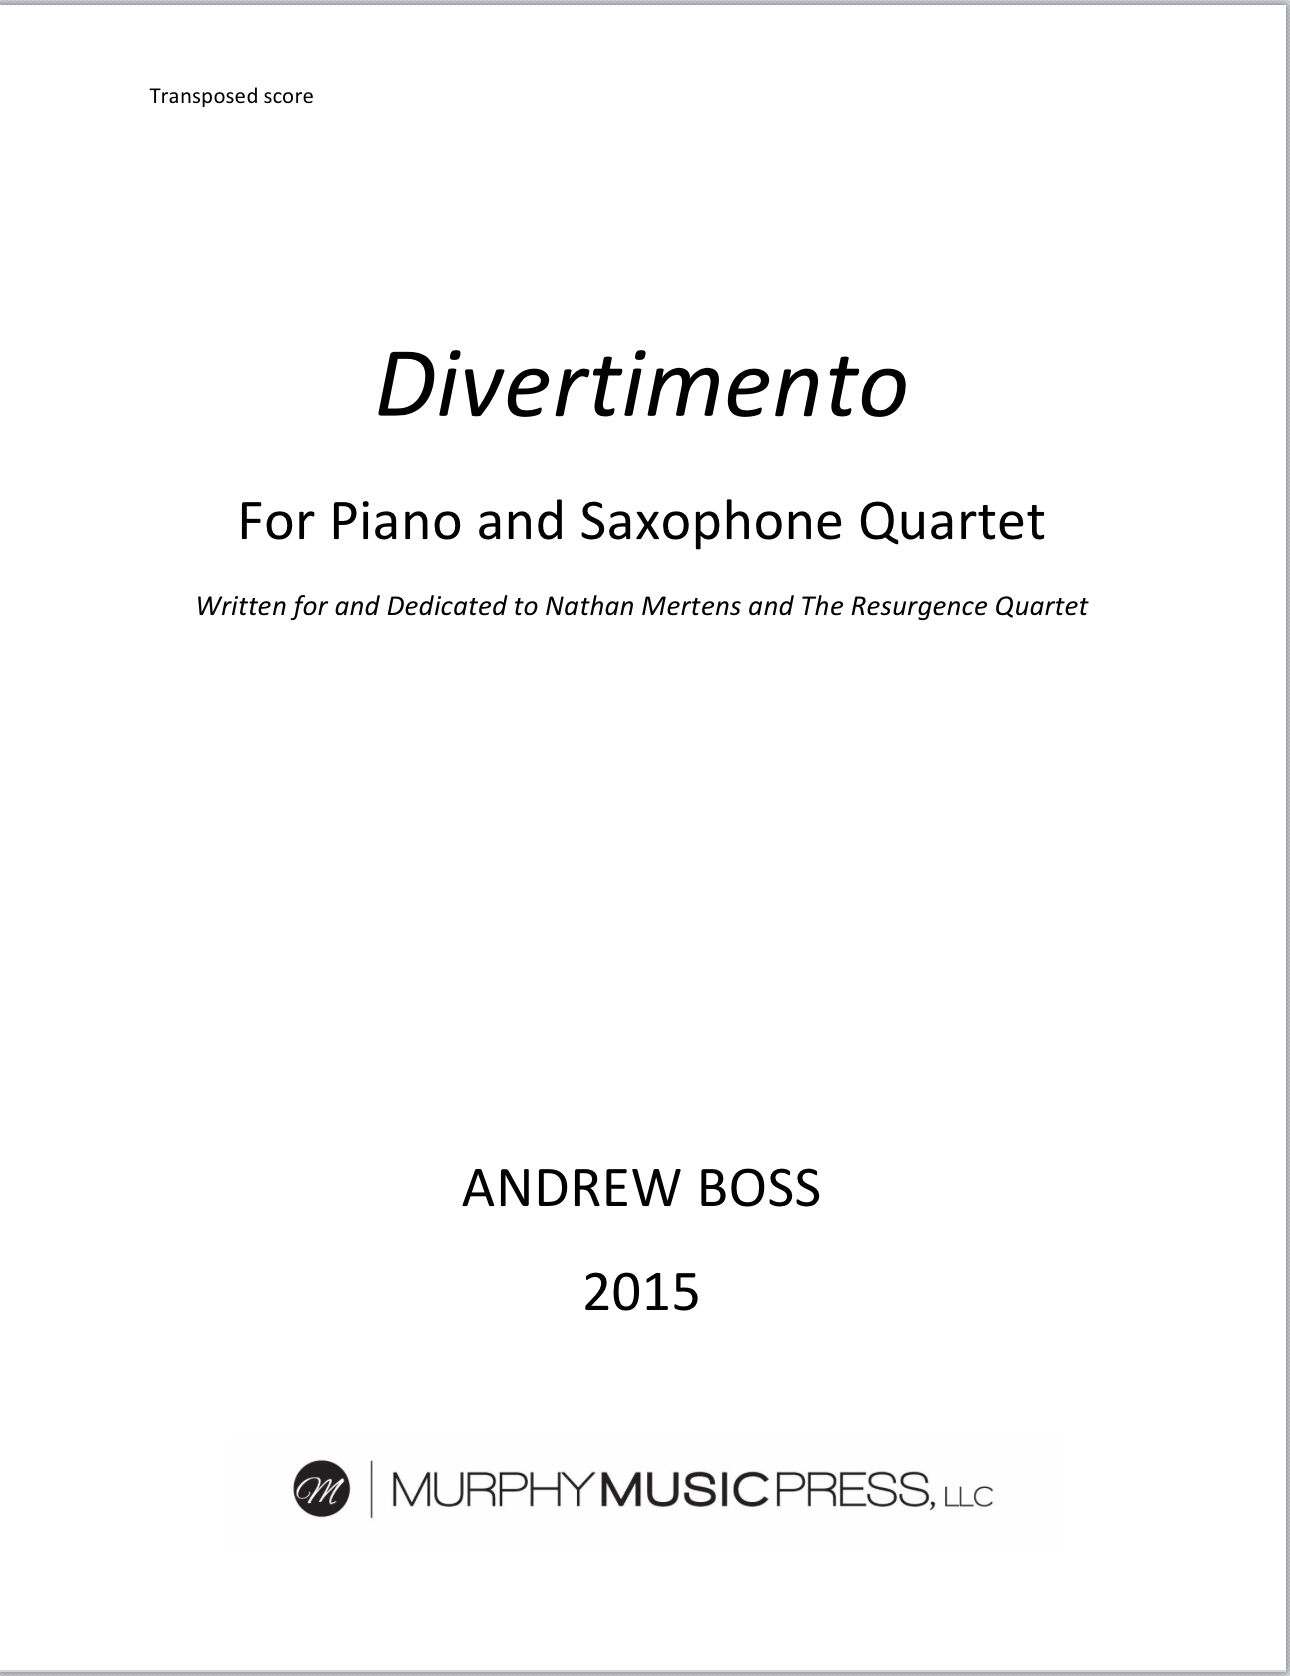 Divertimento by Andrew Boss